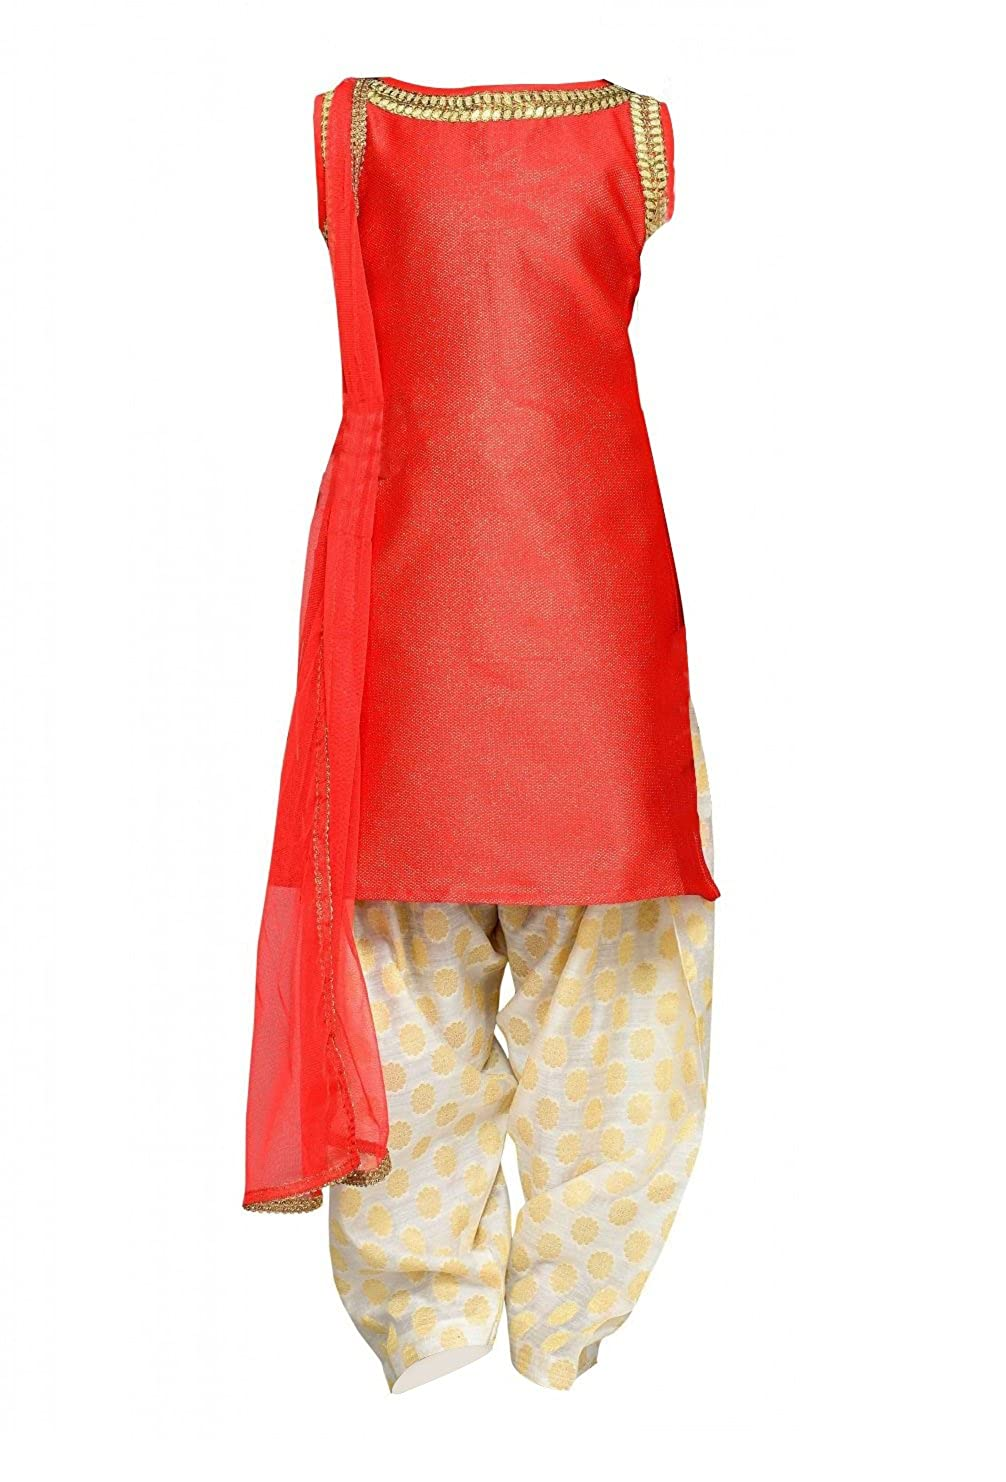 ce833136a5 White Button Girl's Red Heavy Satin Silk Patiala Style Readymade Latest  Kids Salwar Suit Dress: Amazon.in: Clothing & Accessories